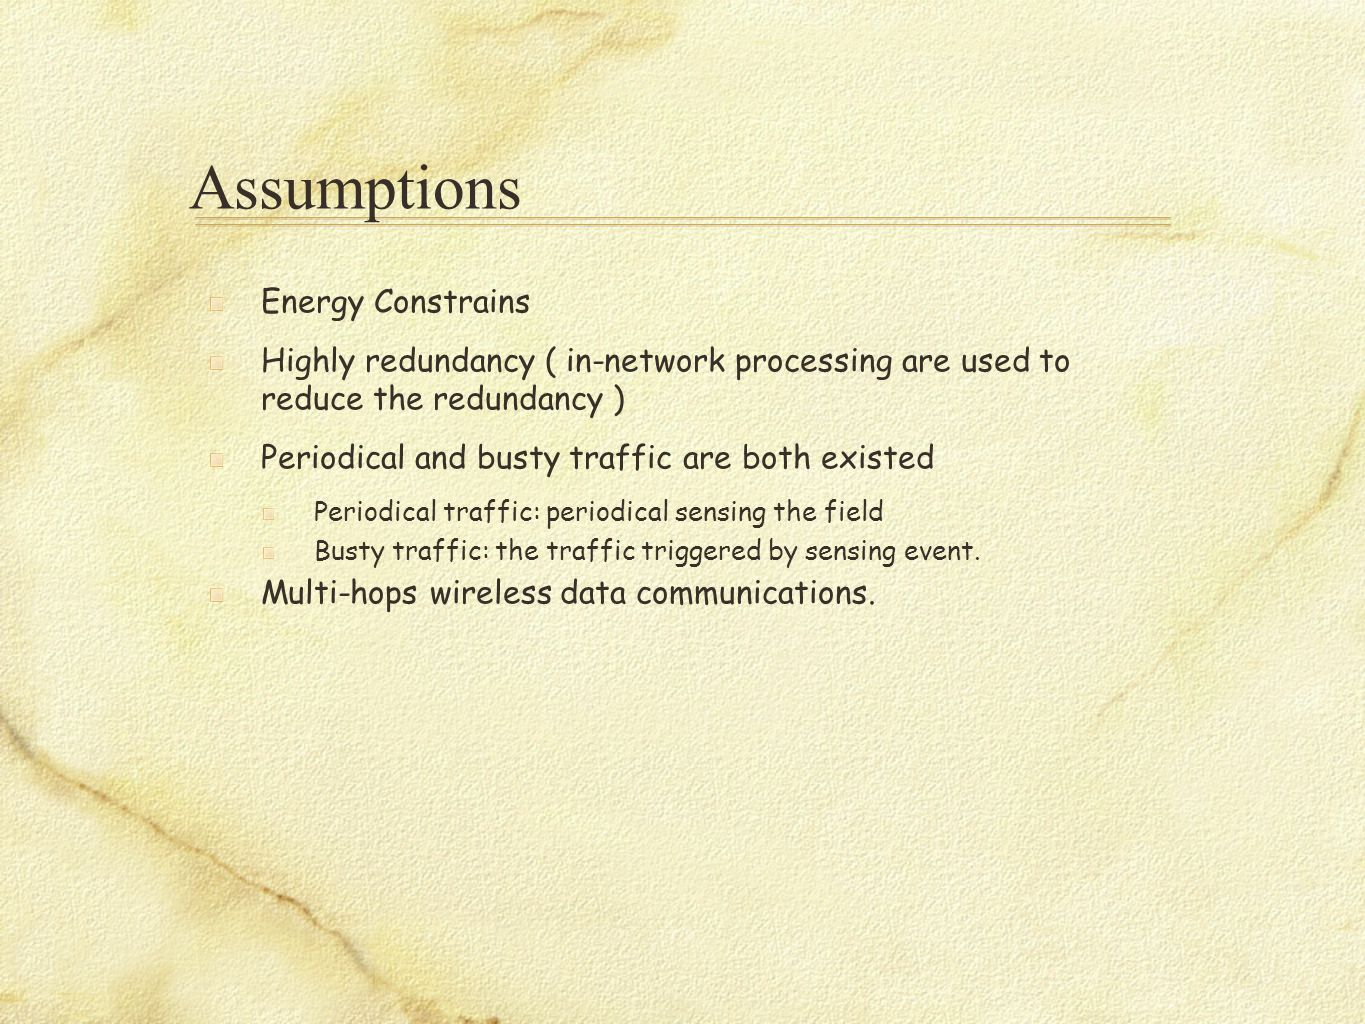 Assumptions Energy Constrains Highly redundancy ( in-network processing are used to reduce the redundancy ) Periodical and busty traffic are both existed Periodical traffic: periodical sensing the field Busty traffic: the traffic triggered by sensing event.